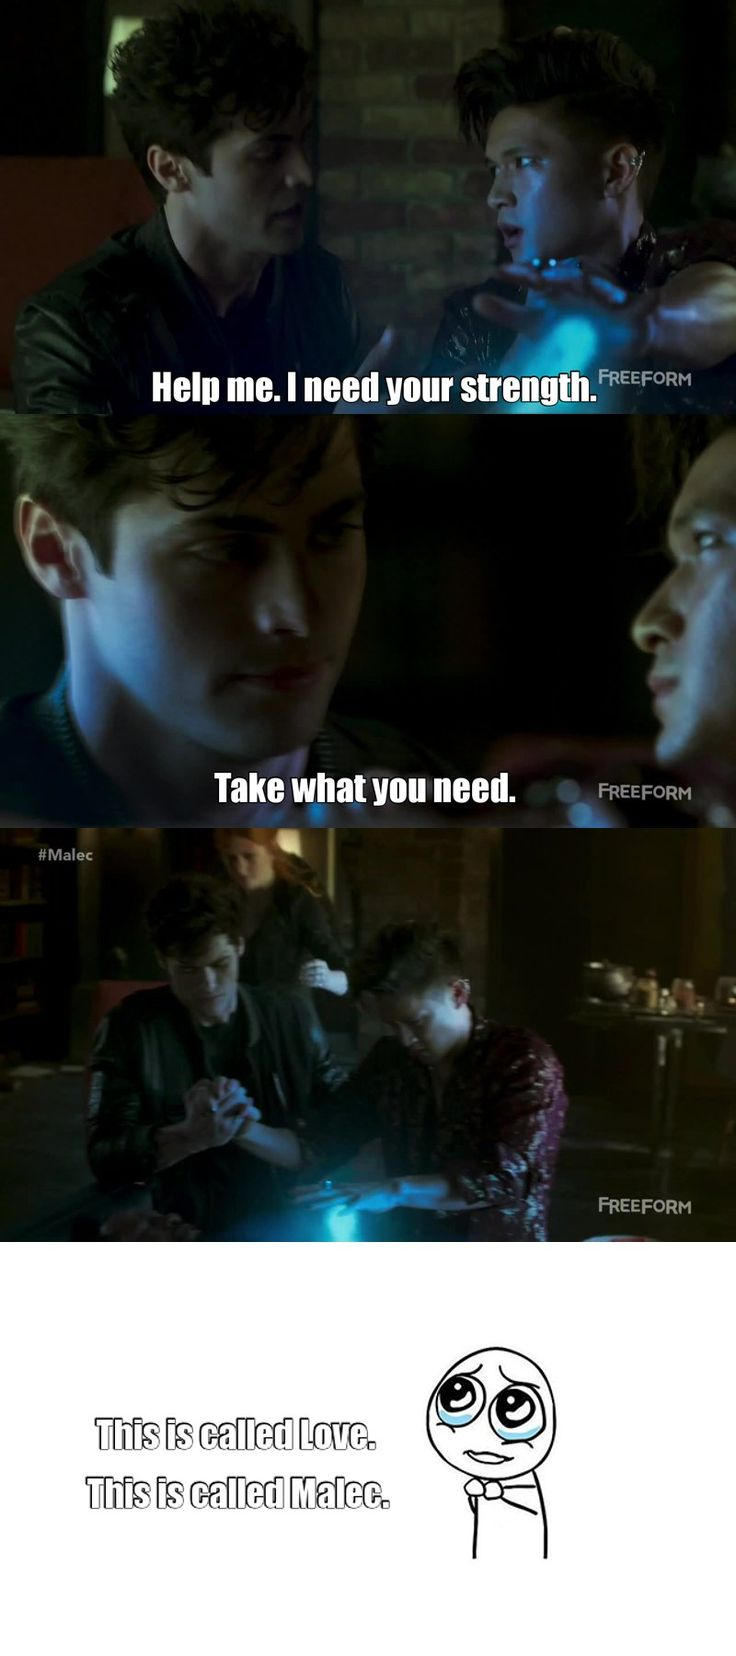 "Shadowhunters S01E06 - Of Men and Angels -""Do you remember when I needed some of your strength?"" -""Do you need it again now?"" Alec said. ""Because you can have it."" -""I always need your strength, Alec.""  Malec"